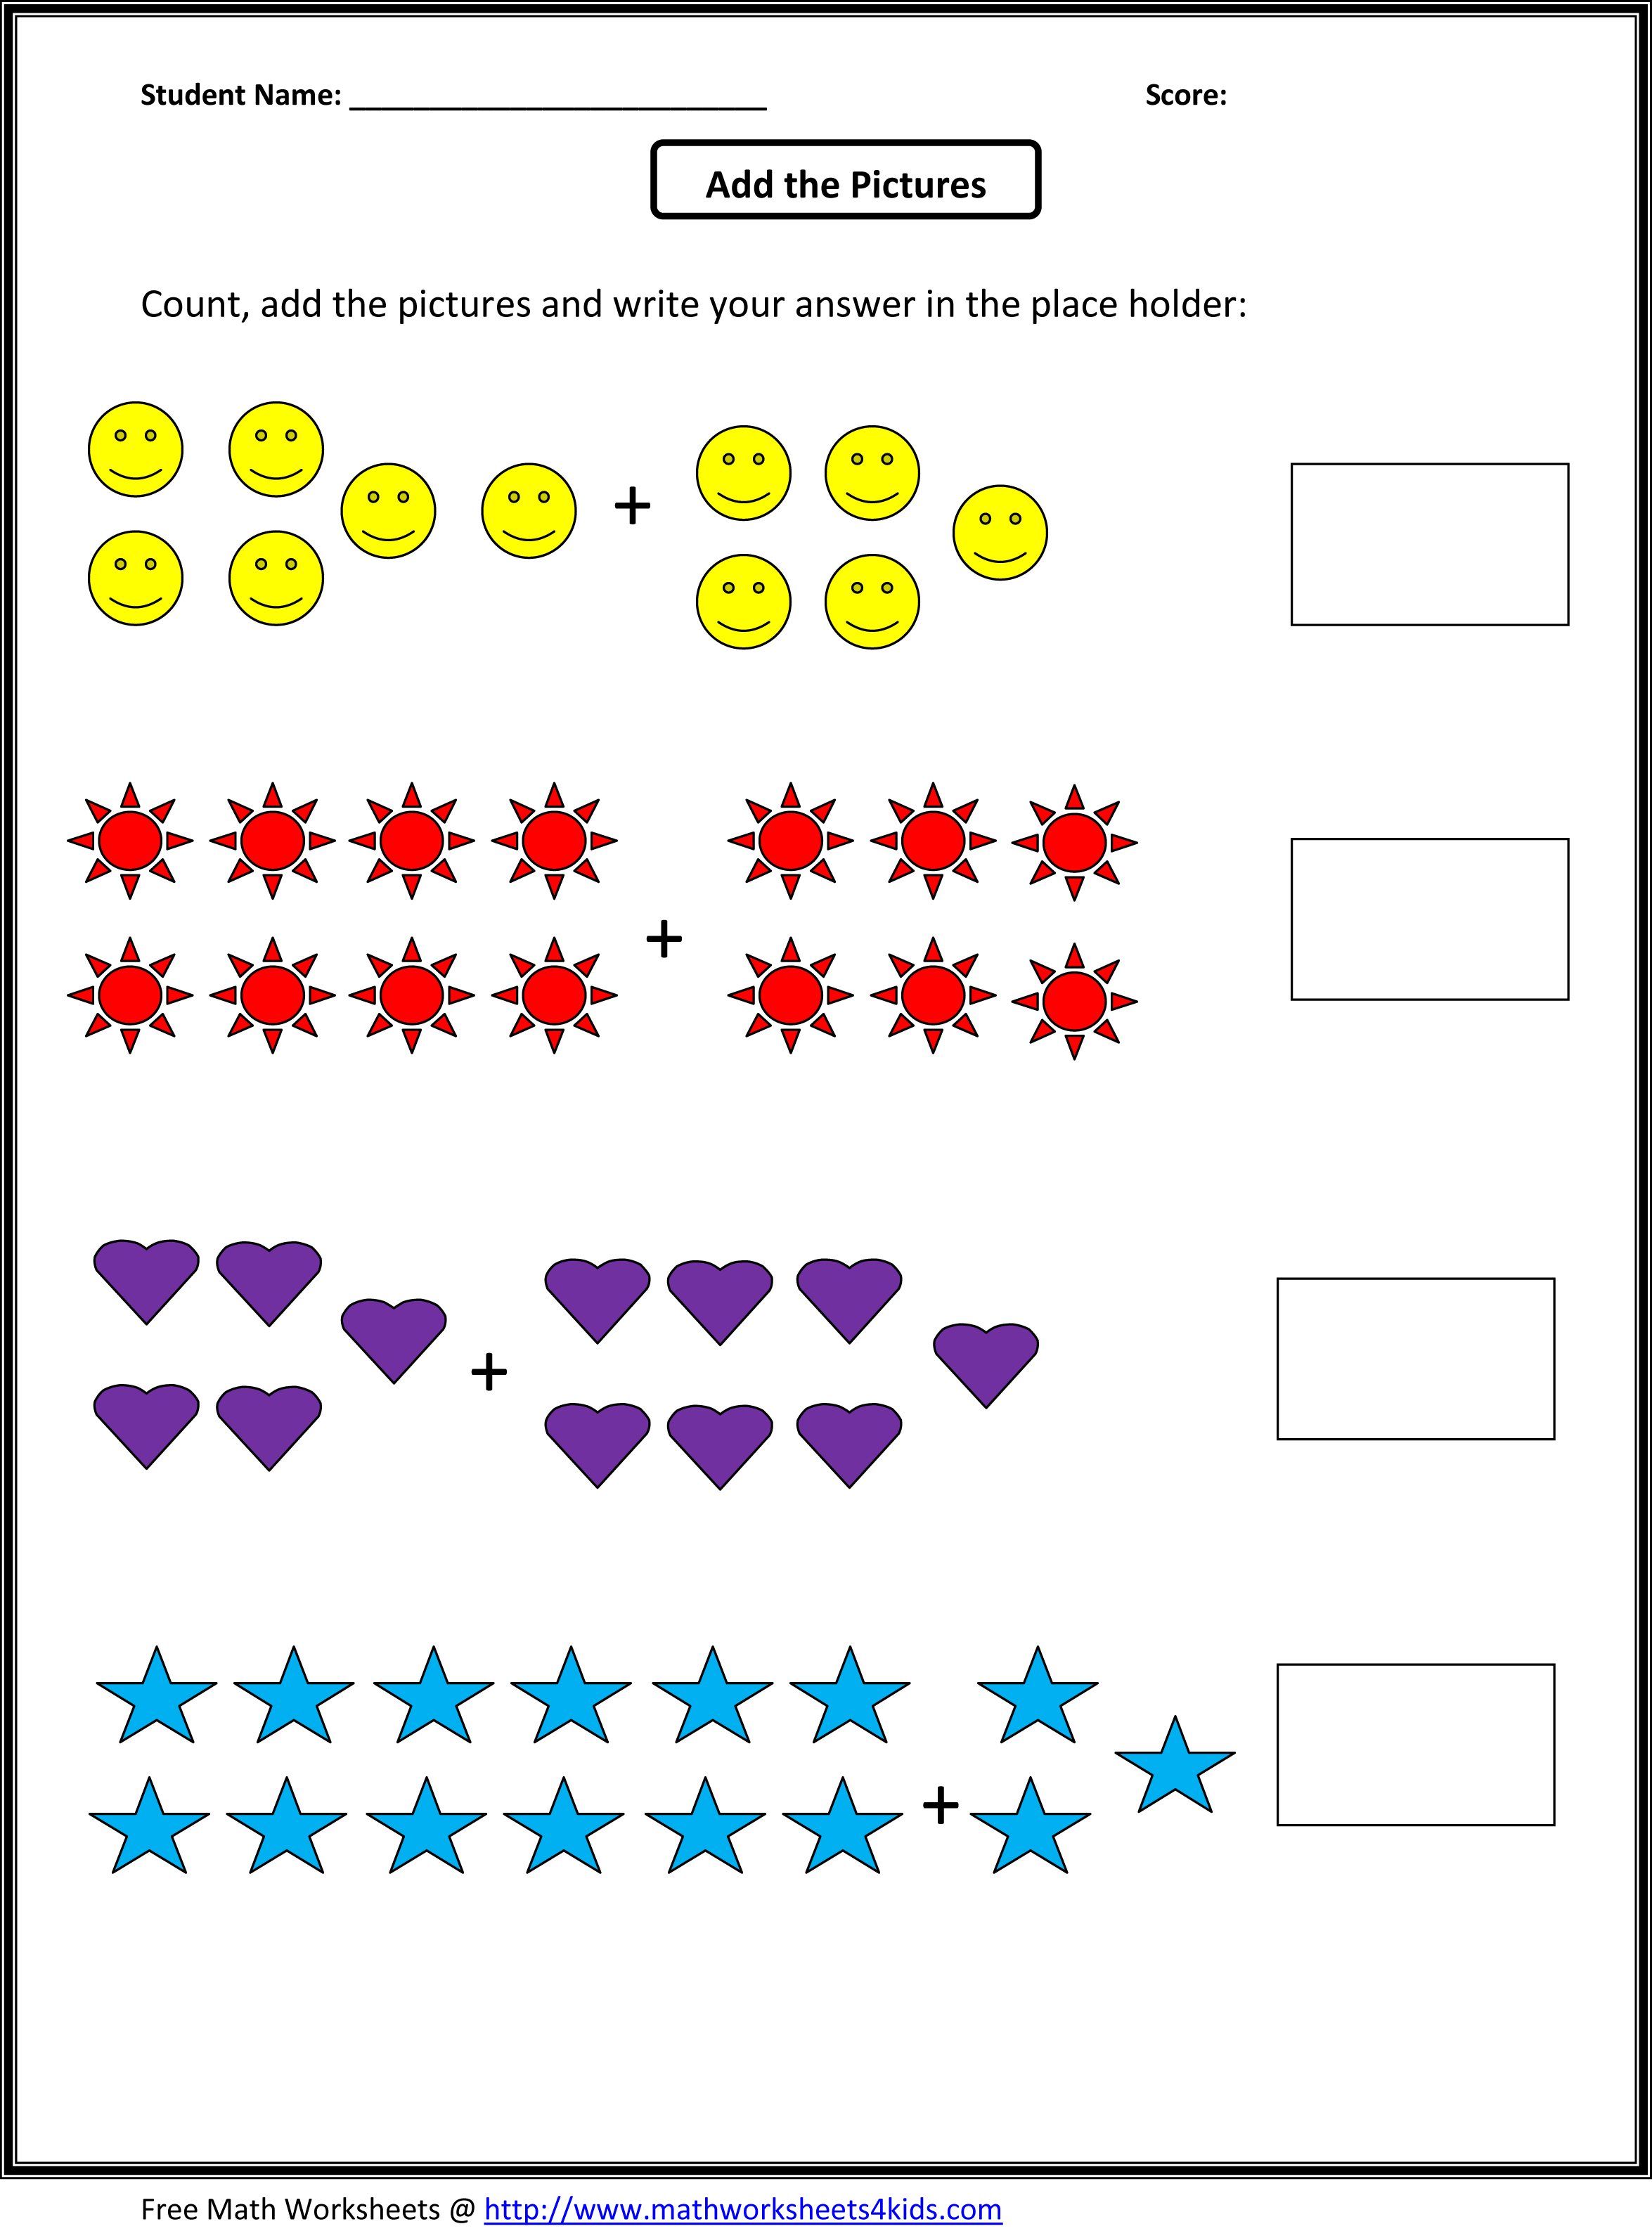 Weirdmailus  Inspiring Grade  Maths Worksheet  Reocurent With Extraordinary Math Worksheets For St Grade Free  Reocurent With Breathtaking Coordinate Plane Pictures Worksheets Also Inferential Reading Comprehension Worksheets In Addition Imperatives Worksheet And Mood Tone Worksheets As Well As Basic Algebra Worksheets Free Additionally Exploring Science Worksheets From Reocurentcom With Weirdmailus  Extraordinary Grade  Maths Worksheet  Reocurent With Breathtaking Math Worksheets For St Grade Free  Reocurent And Inspiring Coordinate Plane Pictures Worksheets Also Inferential Reading Comprehension Worksheets In Addition Imperatives Worksheet From Reocurentcom